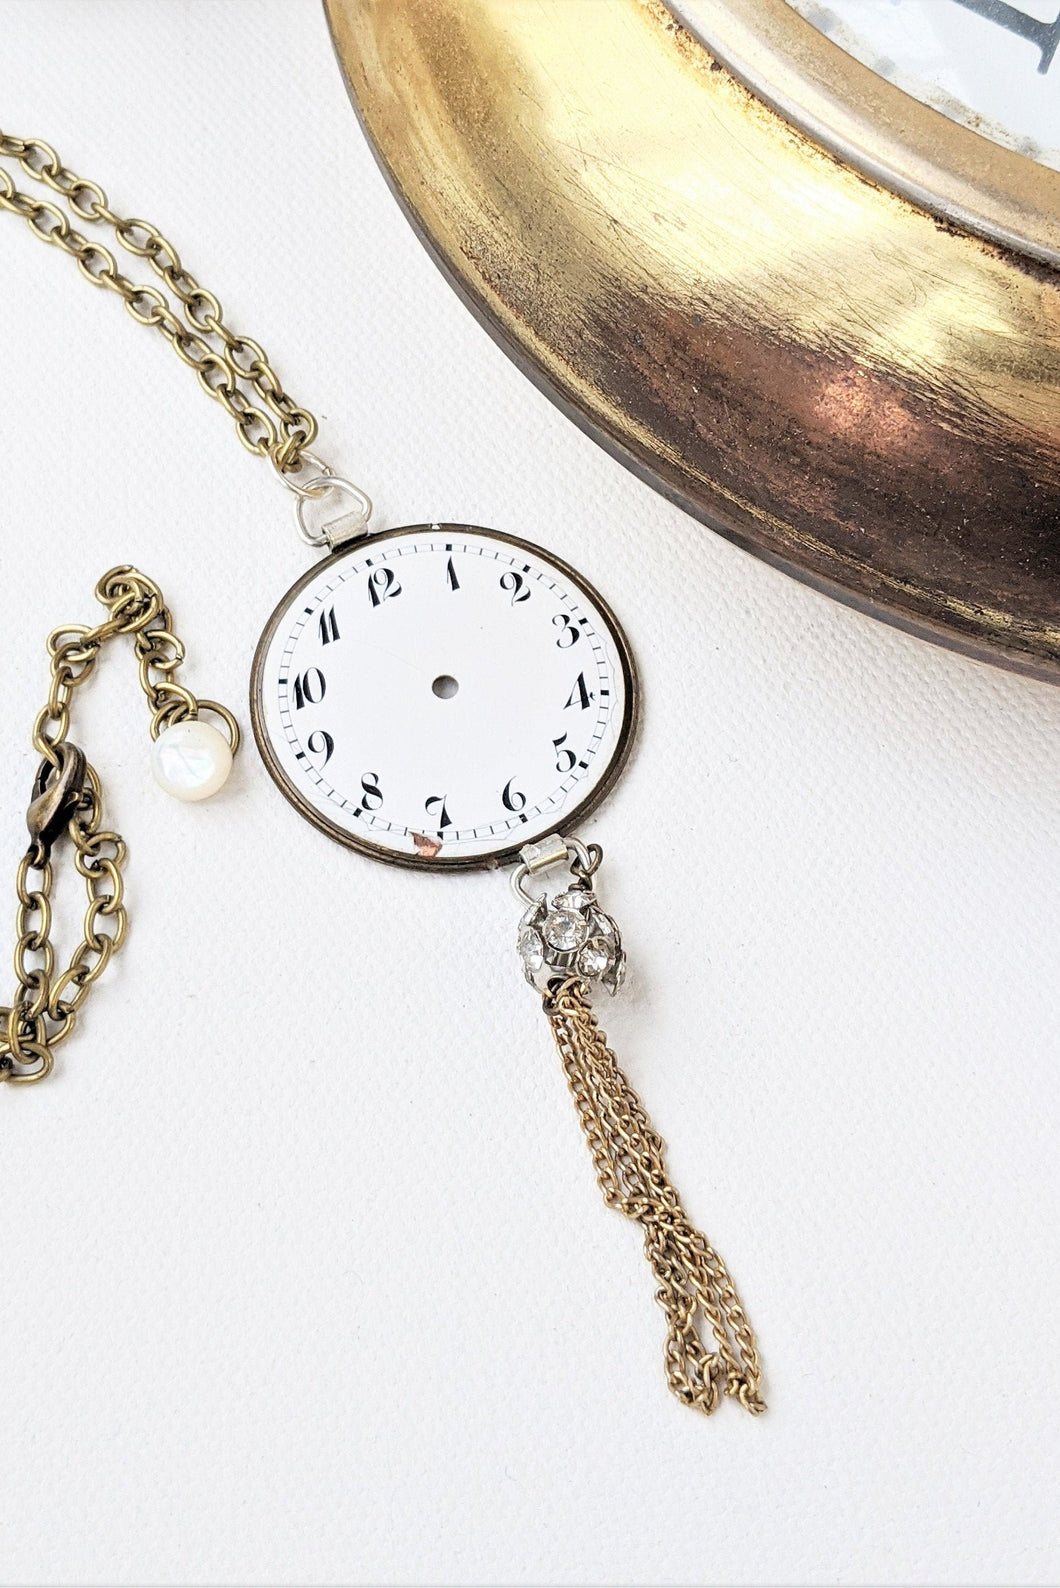 Stemwinder collection Antique pocket watch face long statement necklace Steampunk